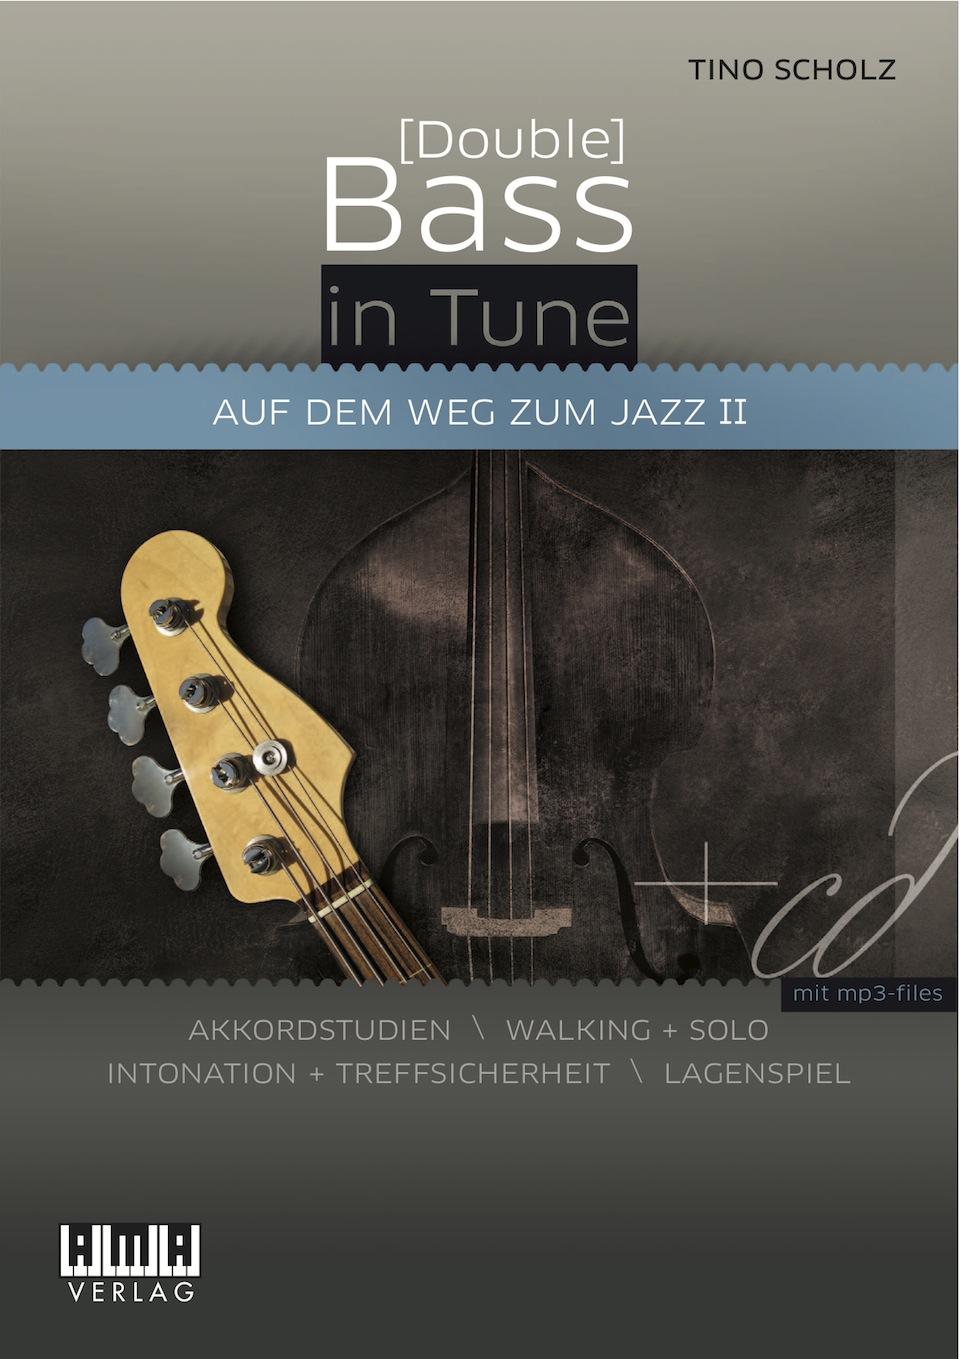 Double Bass in Tune 2 front